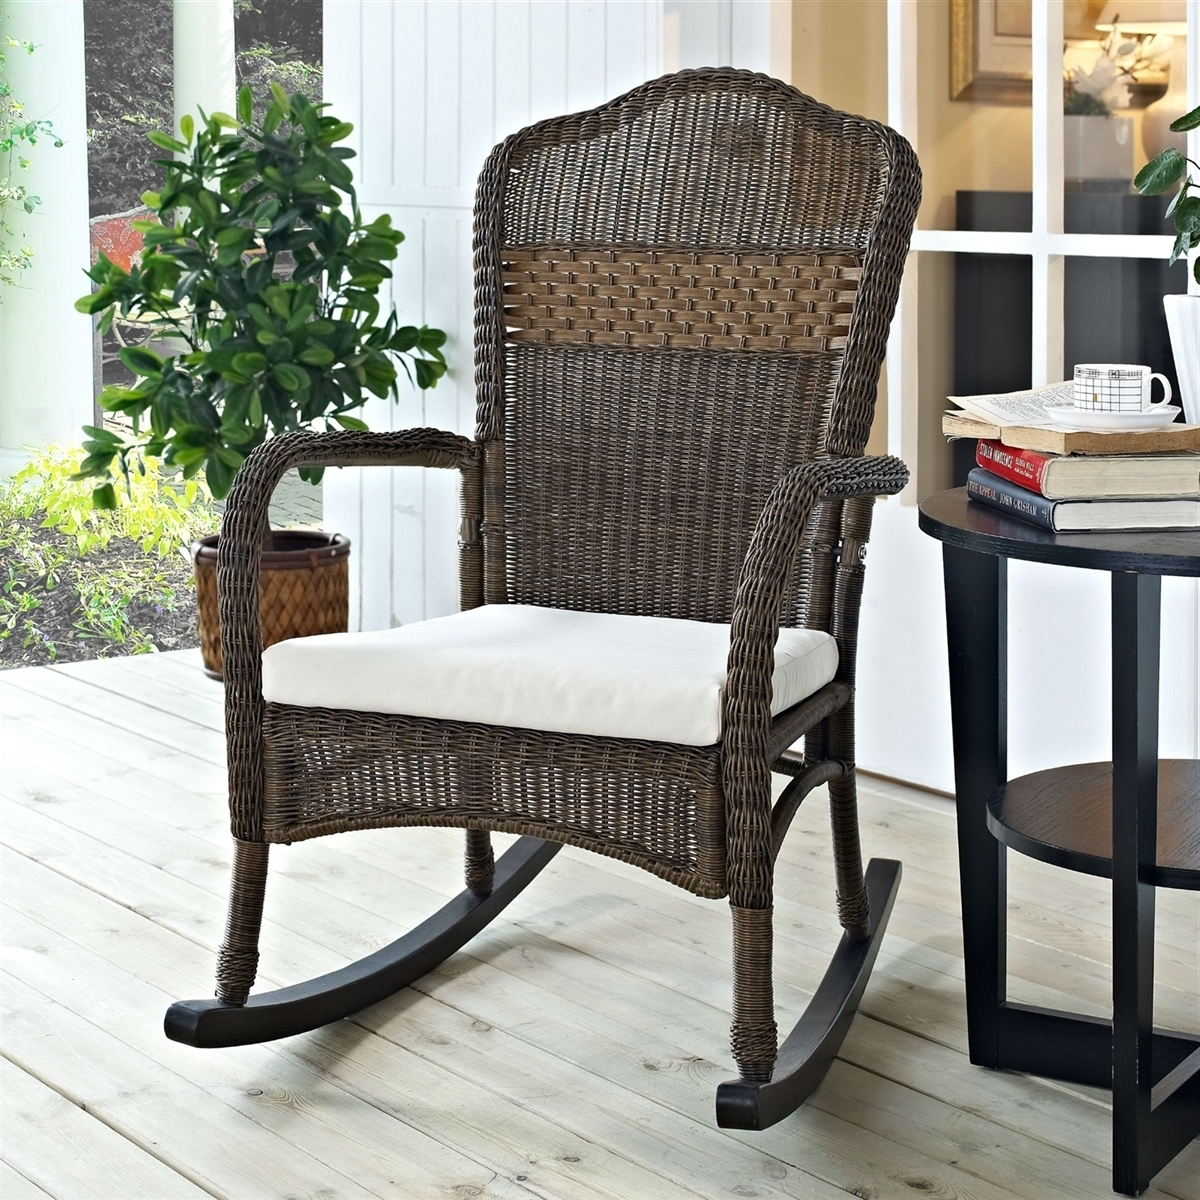 Outdoor Rattan Rockers Resin Rockers Sale Indoor Wicker (View 4 of 15)